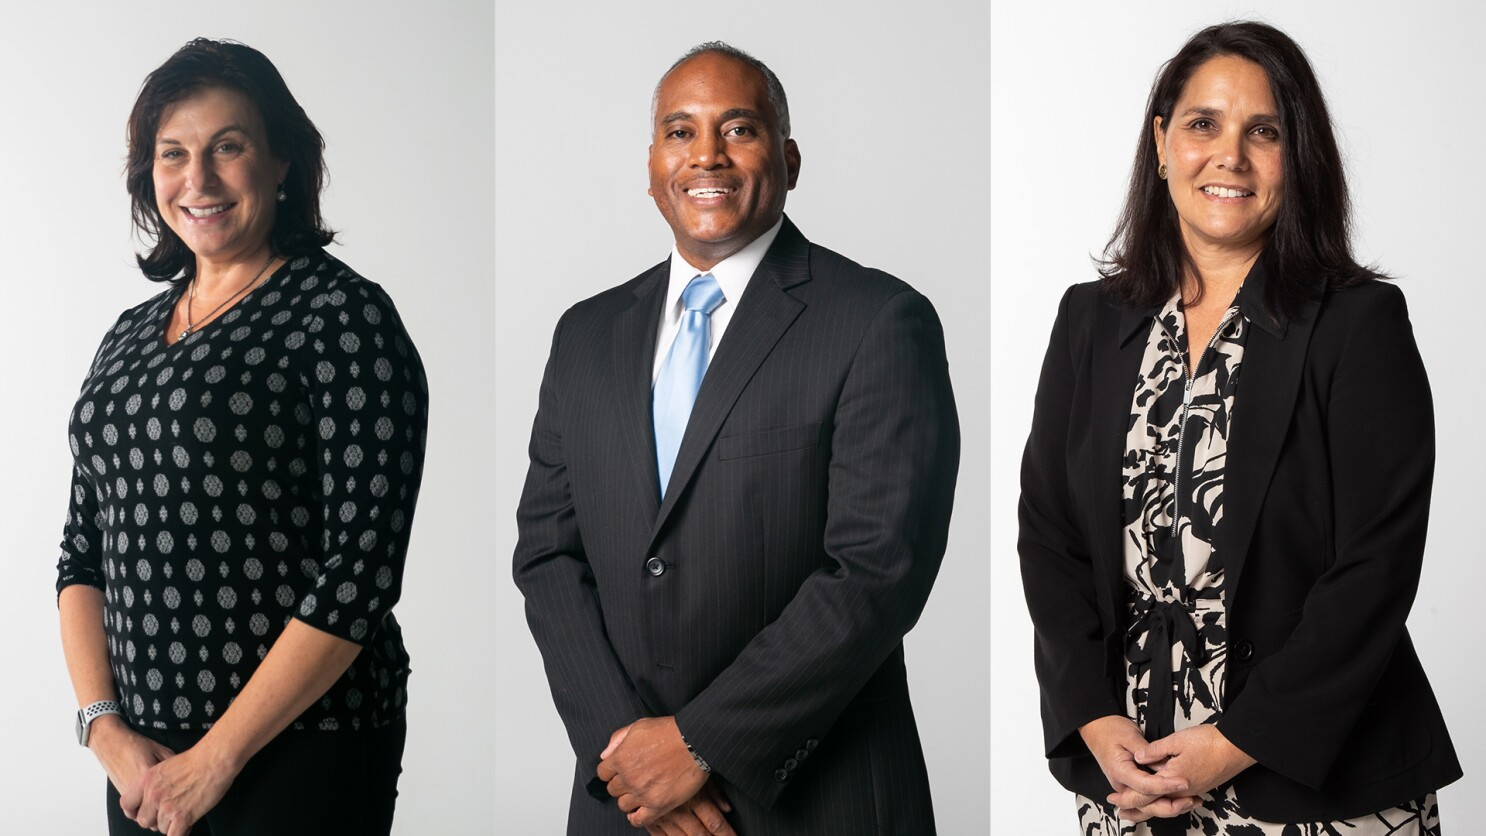 Meet the candidates for San Diego Unified School Board District A